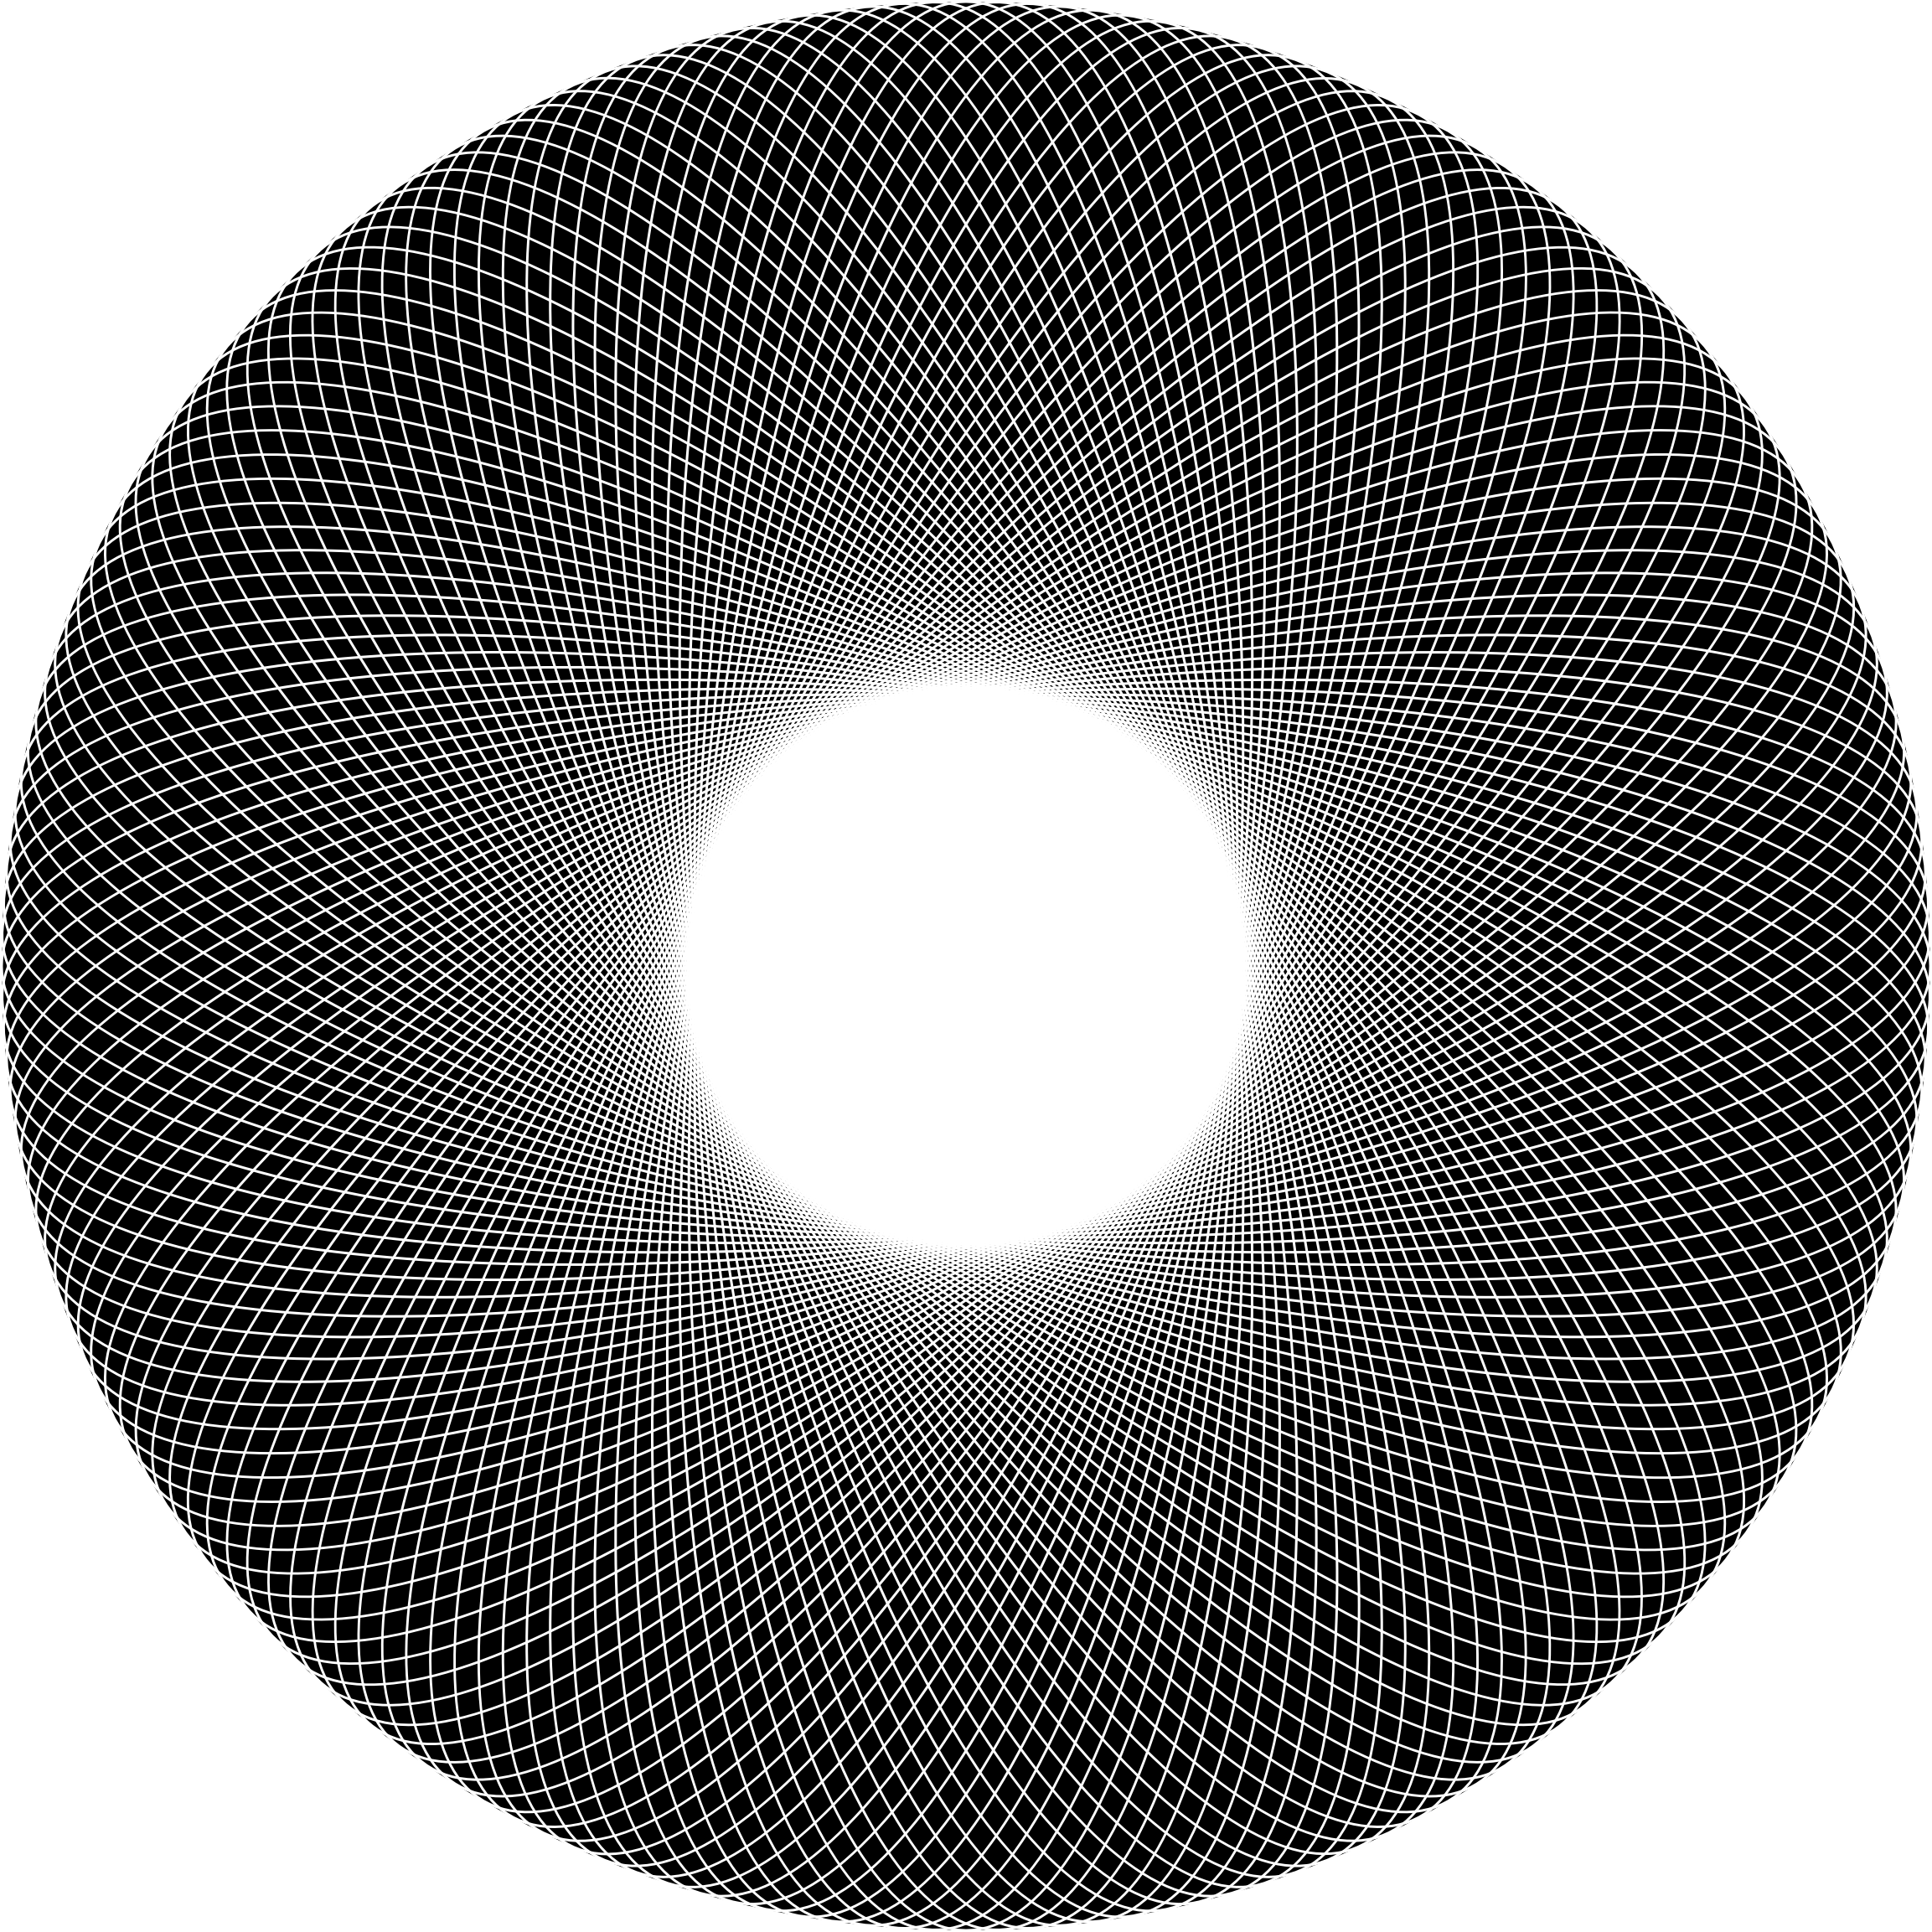 Geometric  Line Art Torus by GDJ